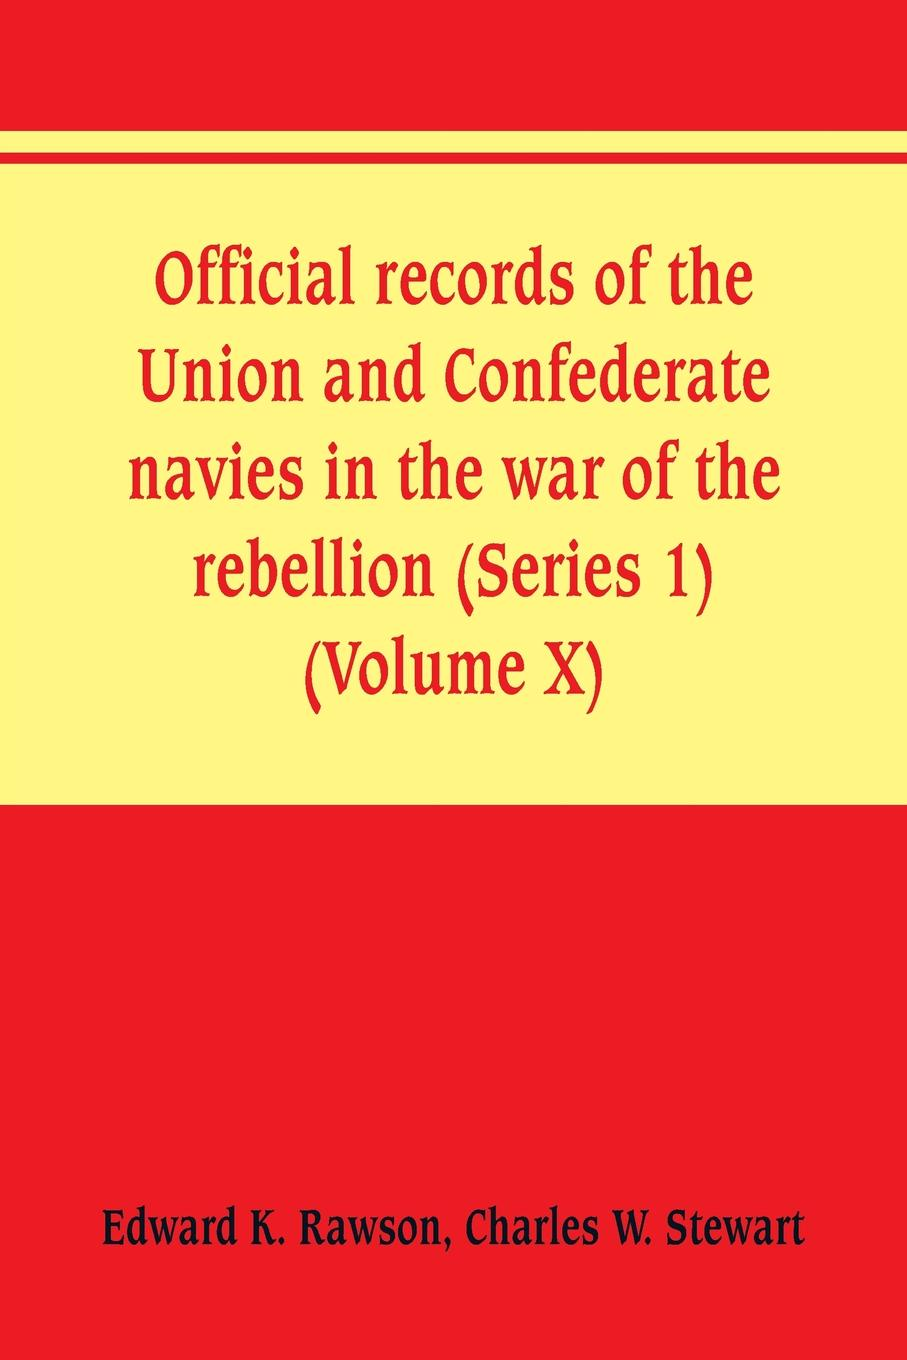 Official records of the Union and Confederate navies in the war of the rebellion (Series 1) (Volume X)